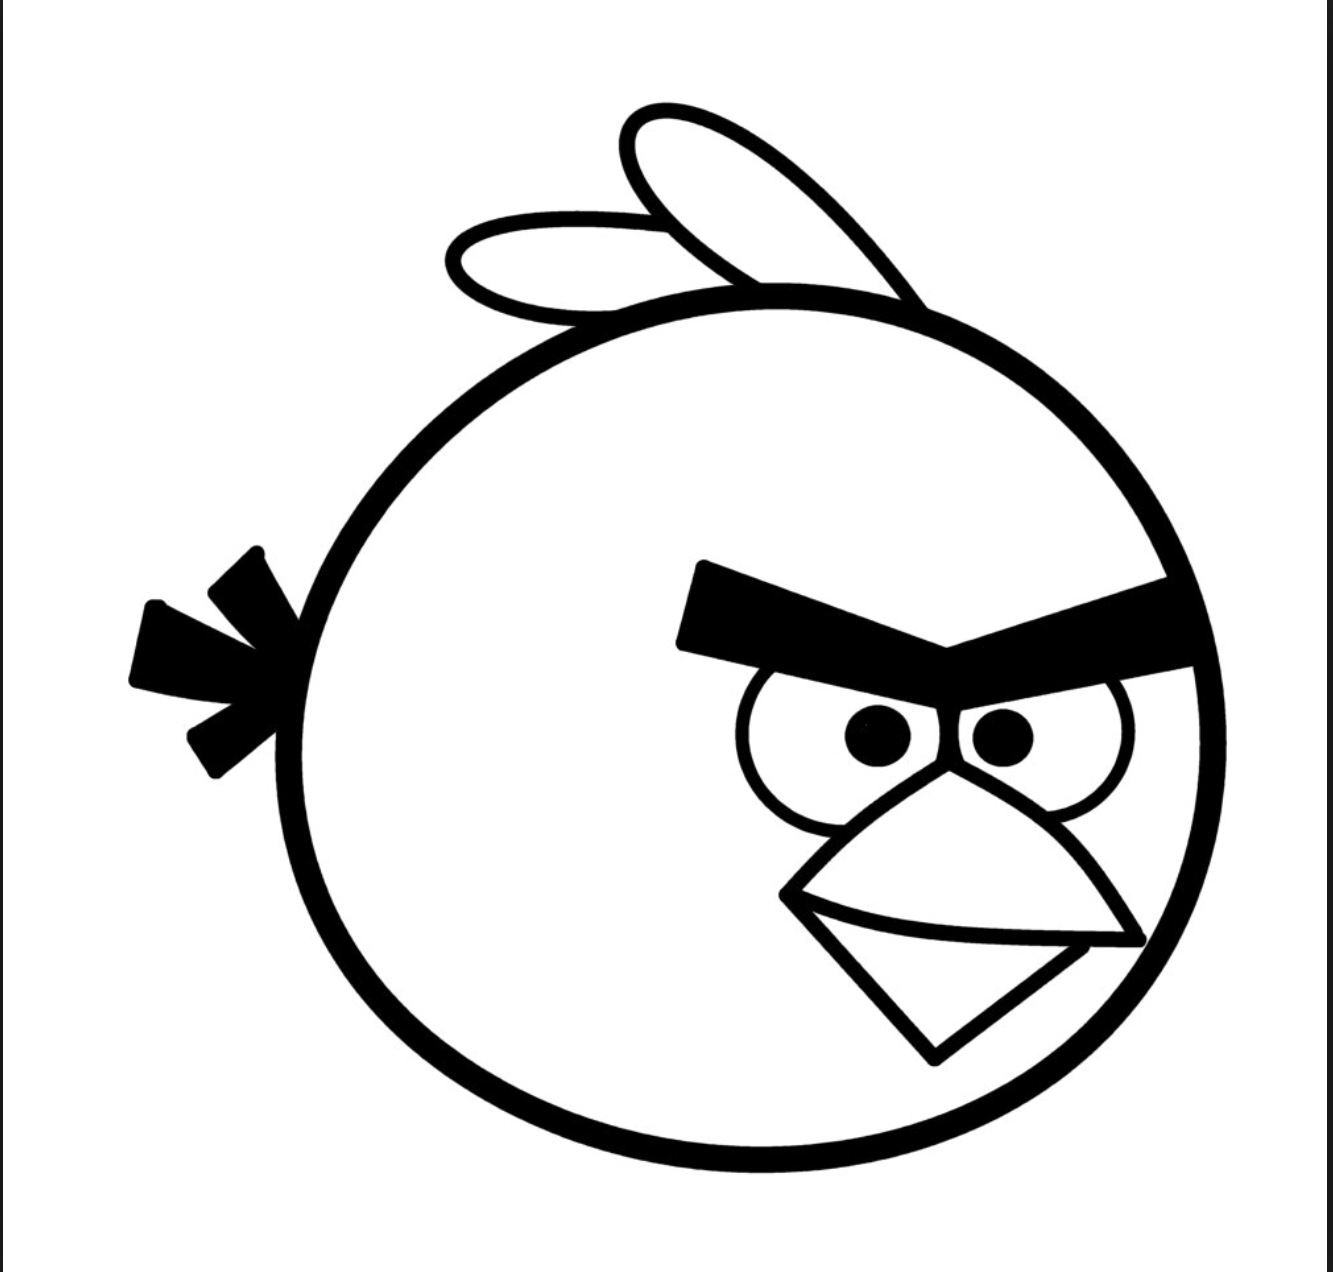 1333x1272 15 Angry Birds Black White Pictures Selection Black